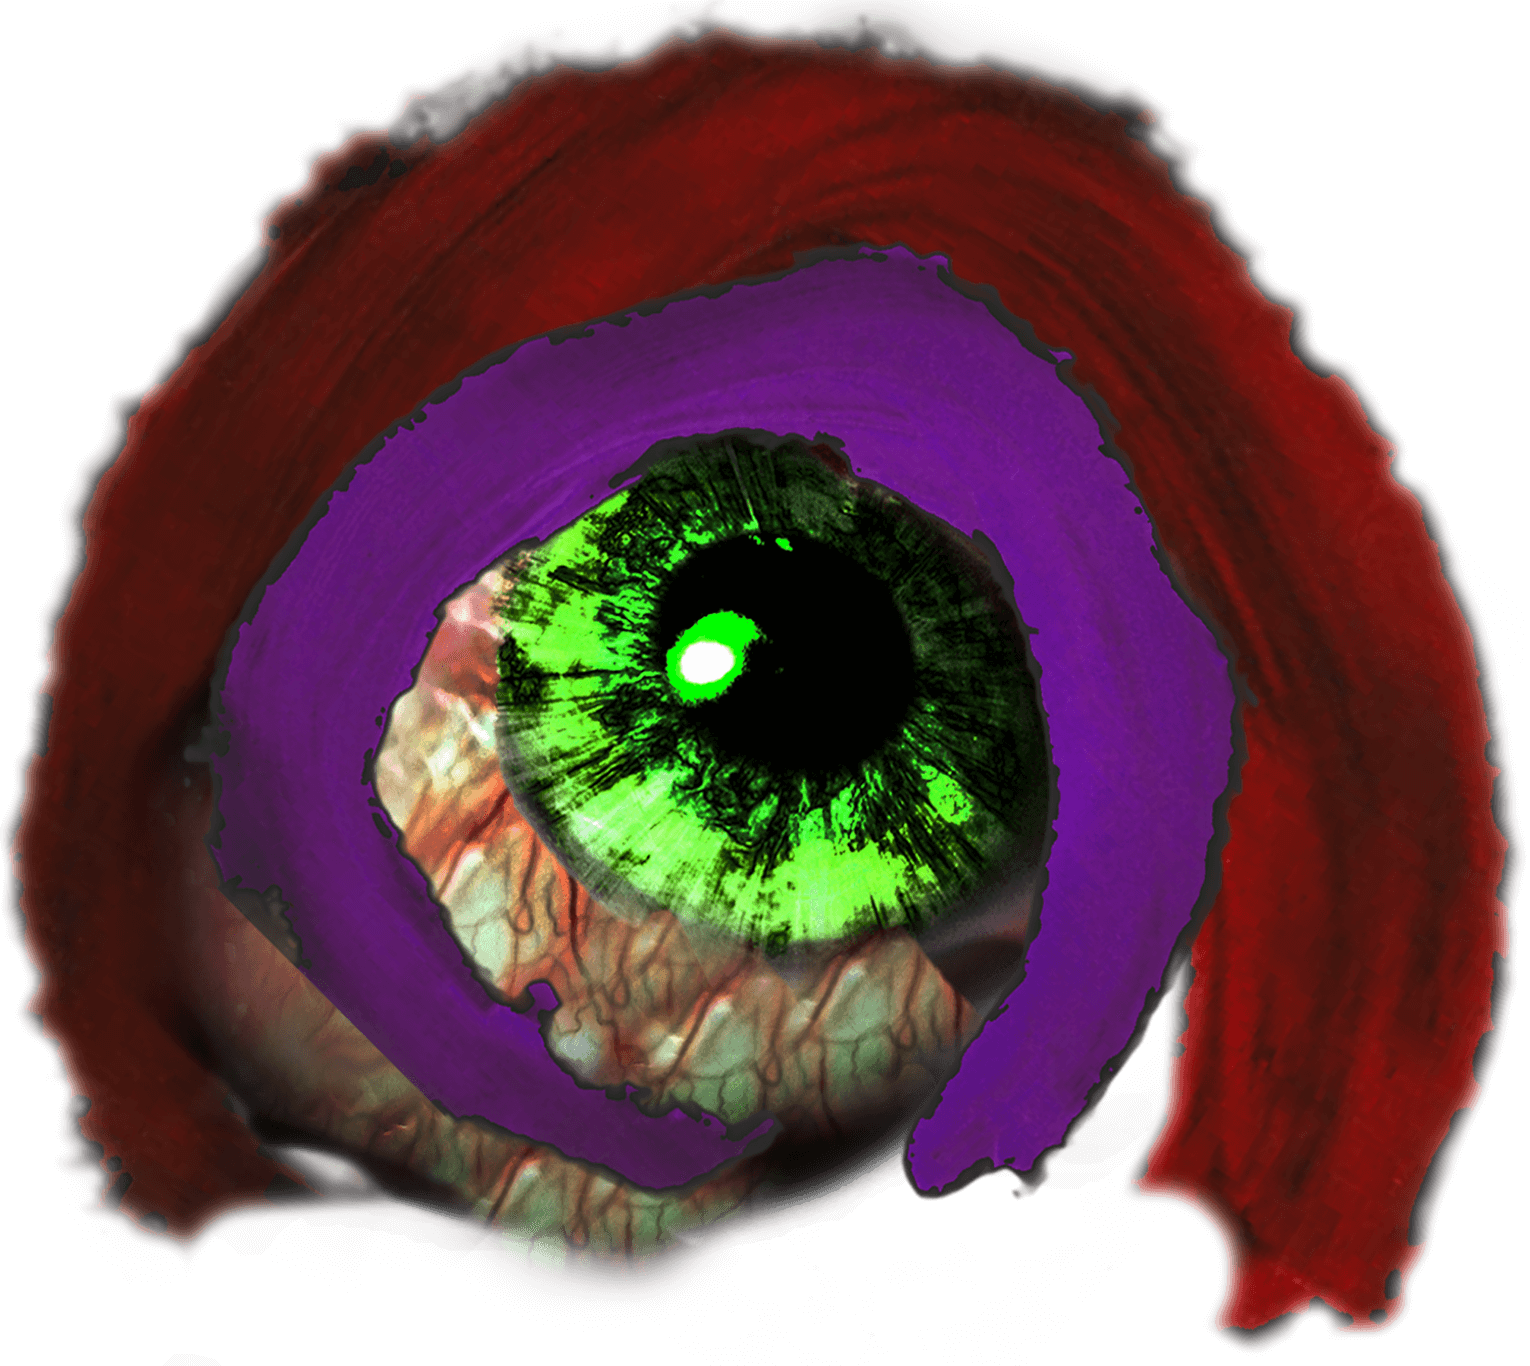 Eyeball Image